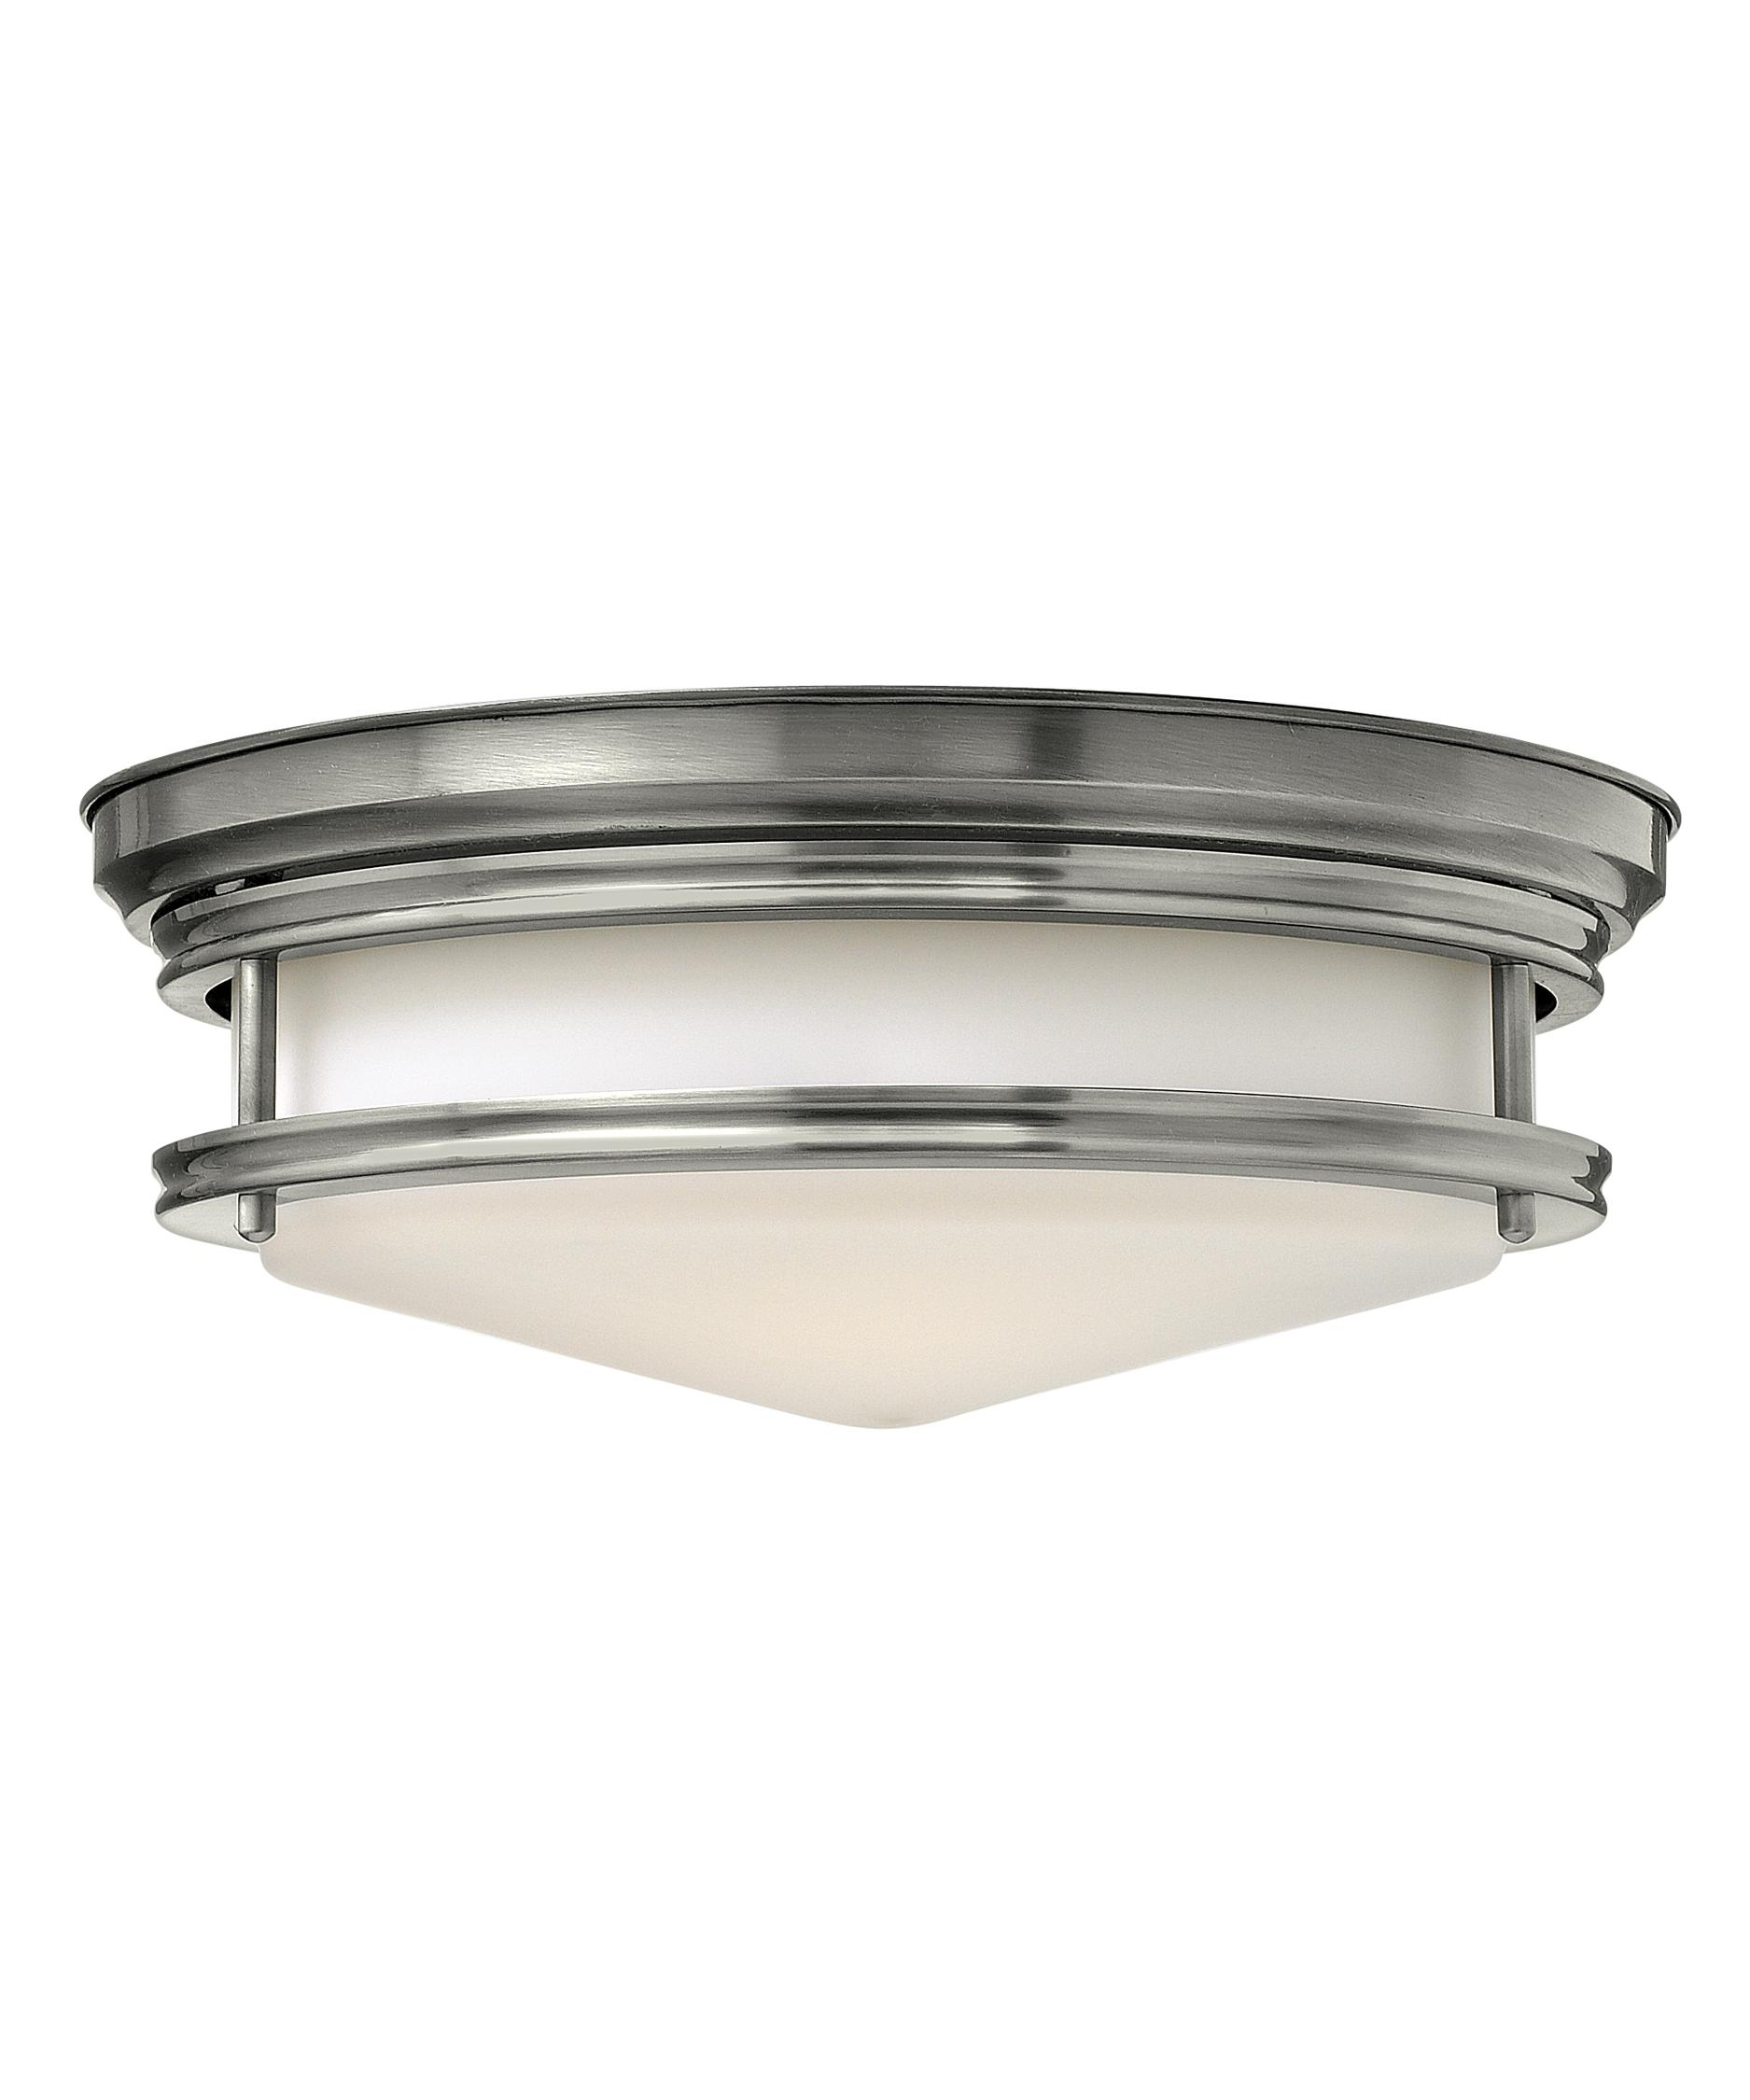 Hinkley Lighting 3301 Hadley 14 Inch Wide Flush Mount | Capitol Inside Double Wall Mount Hinkley Lighting (#10 of 15)